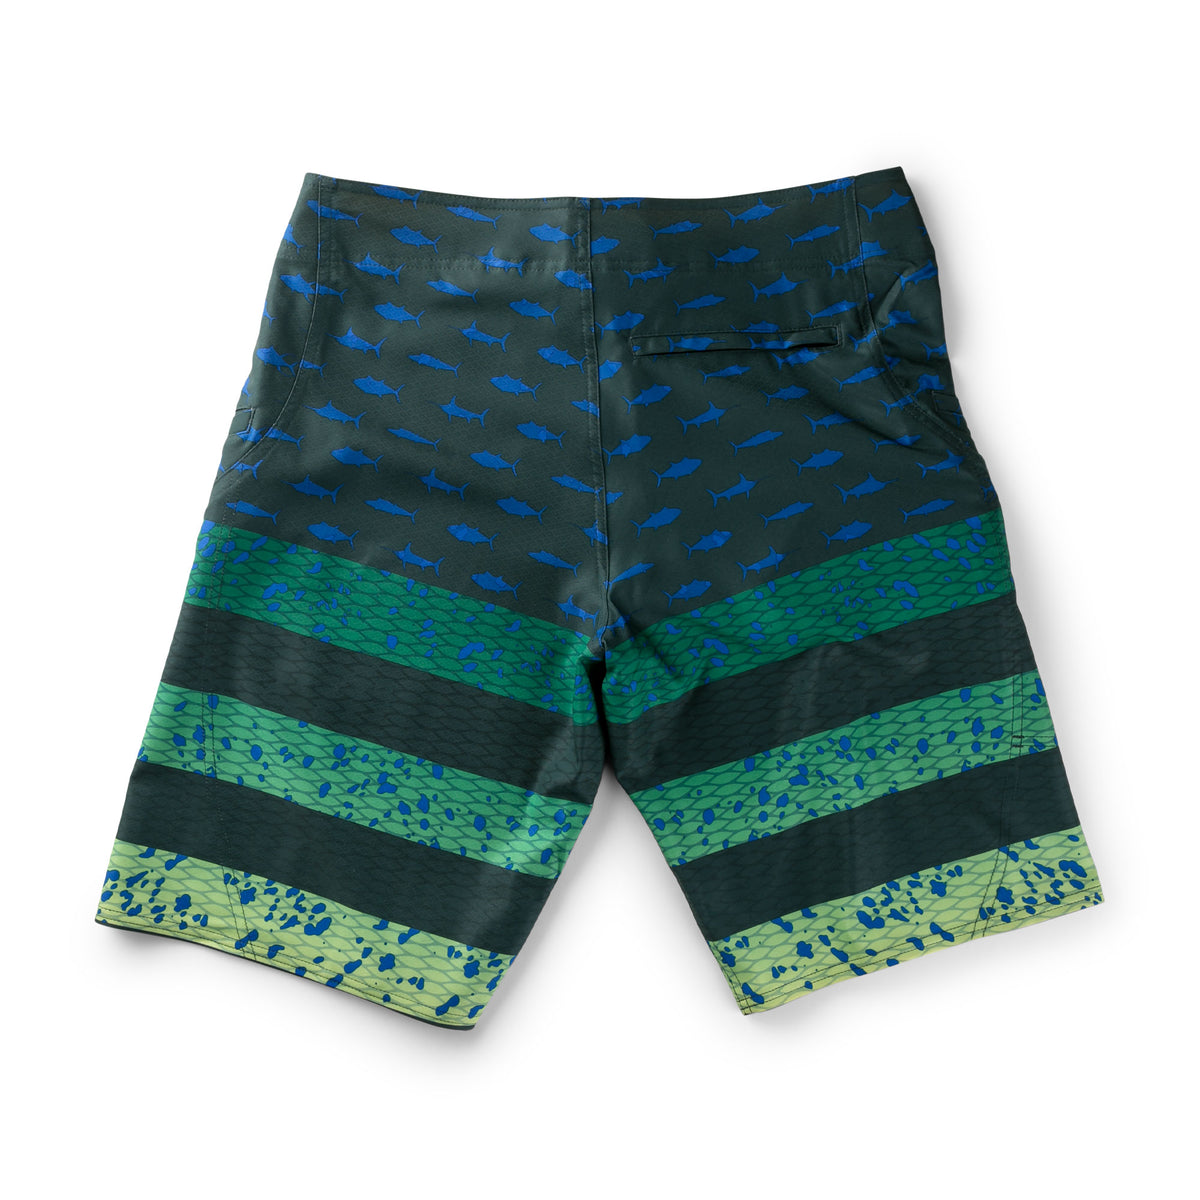 Sharkskin Americamo Fishing Boardshort - Youth Big Image - 3